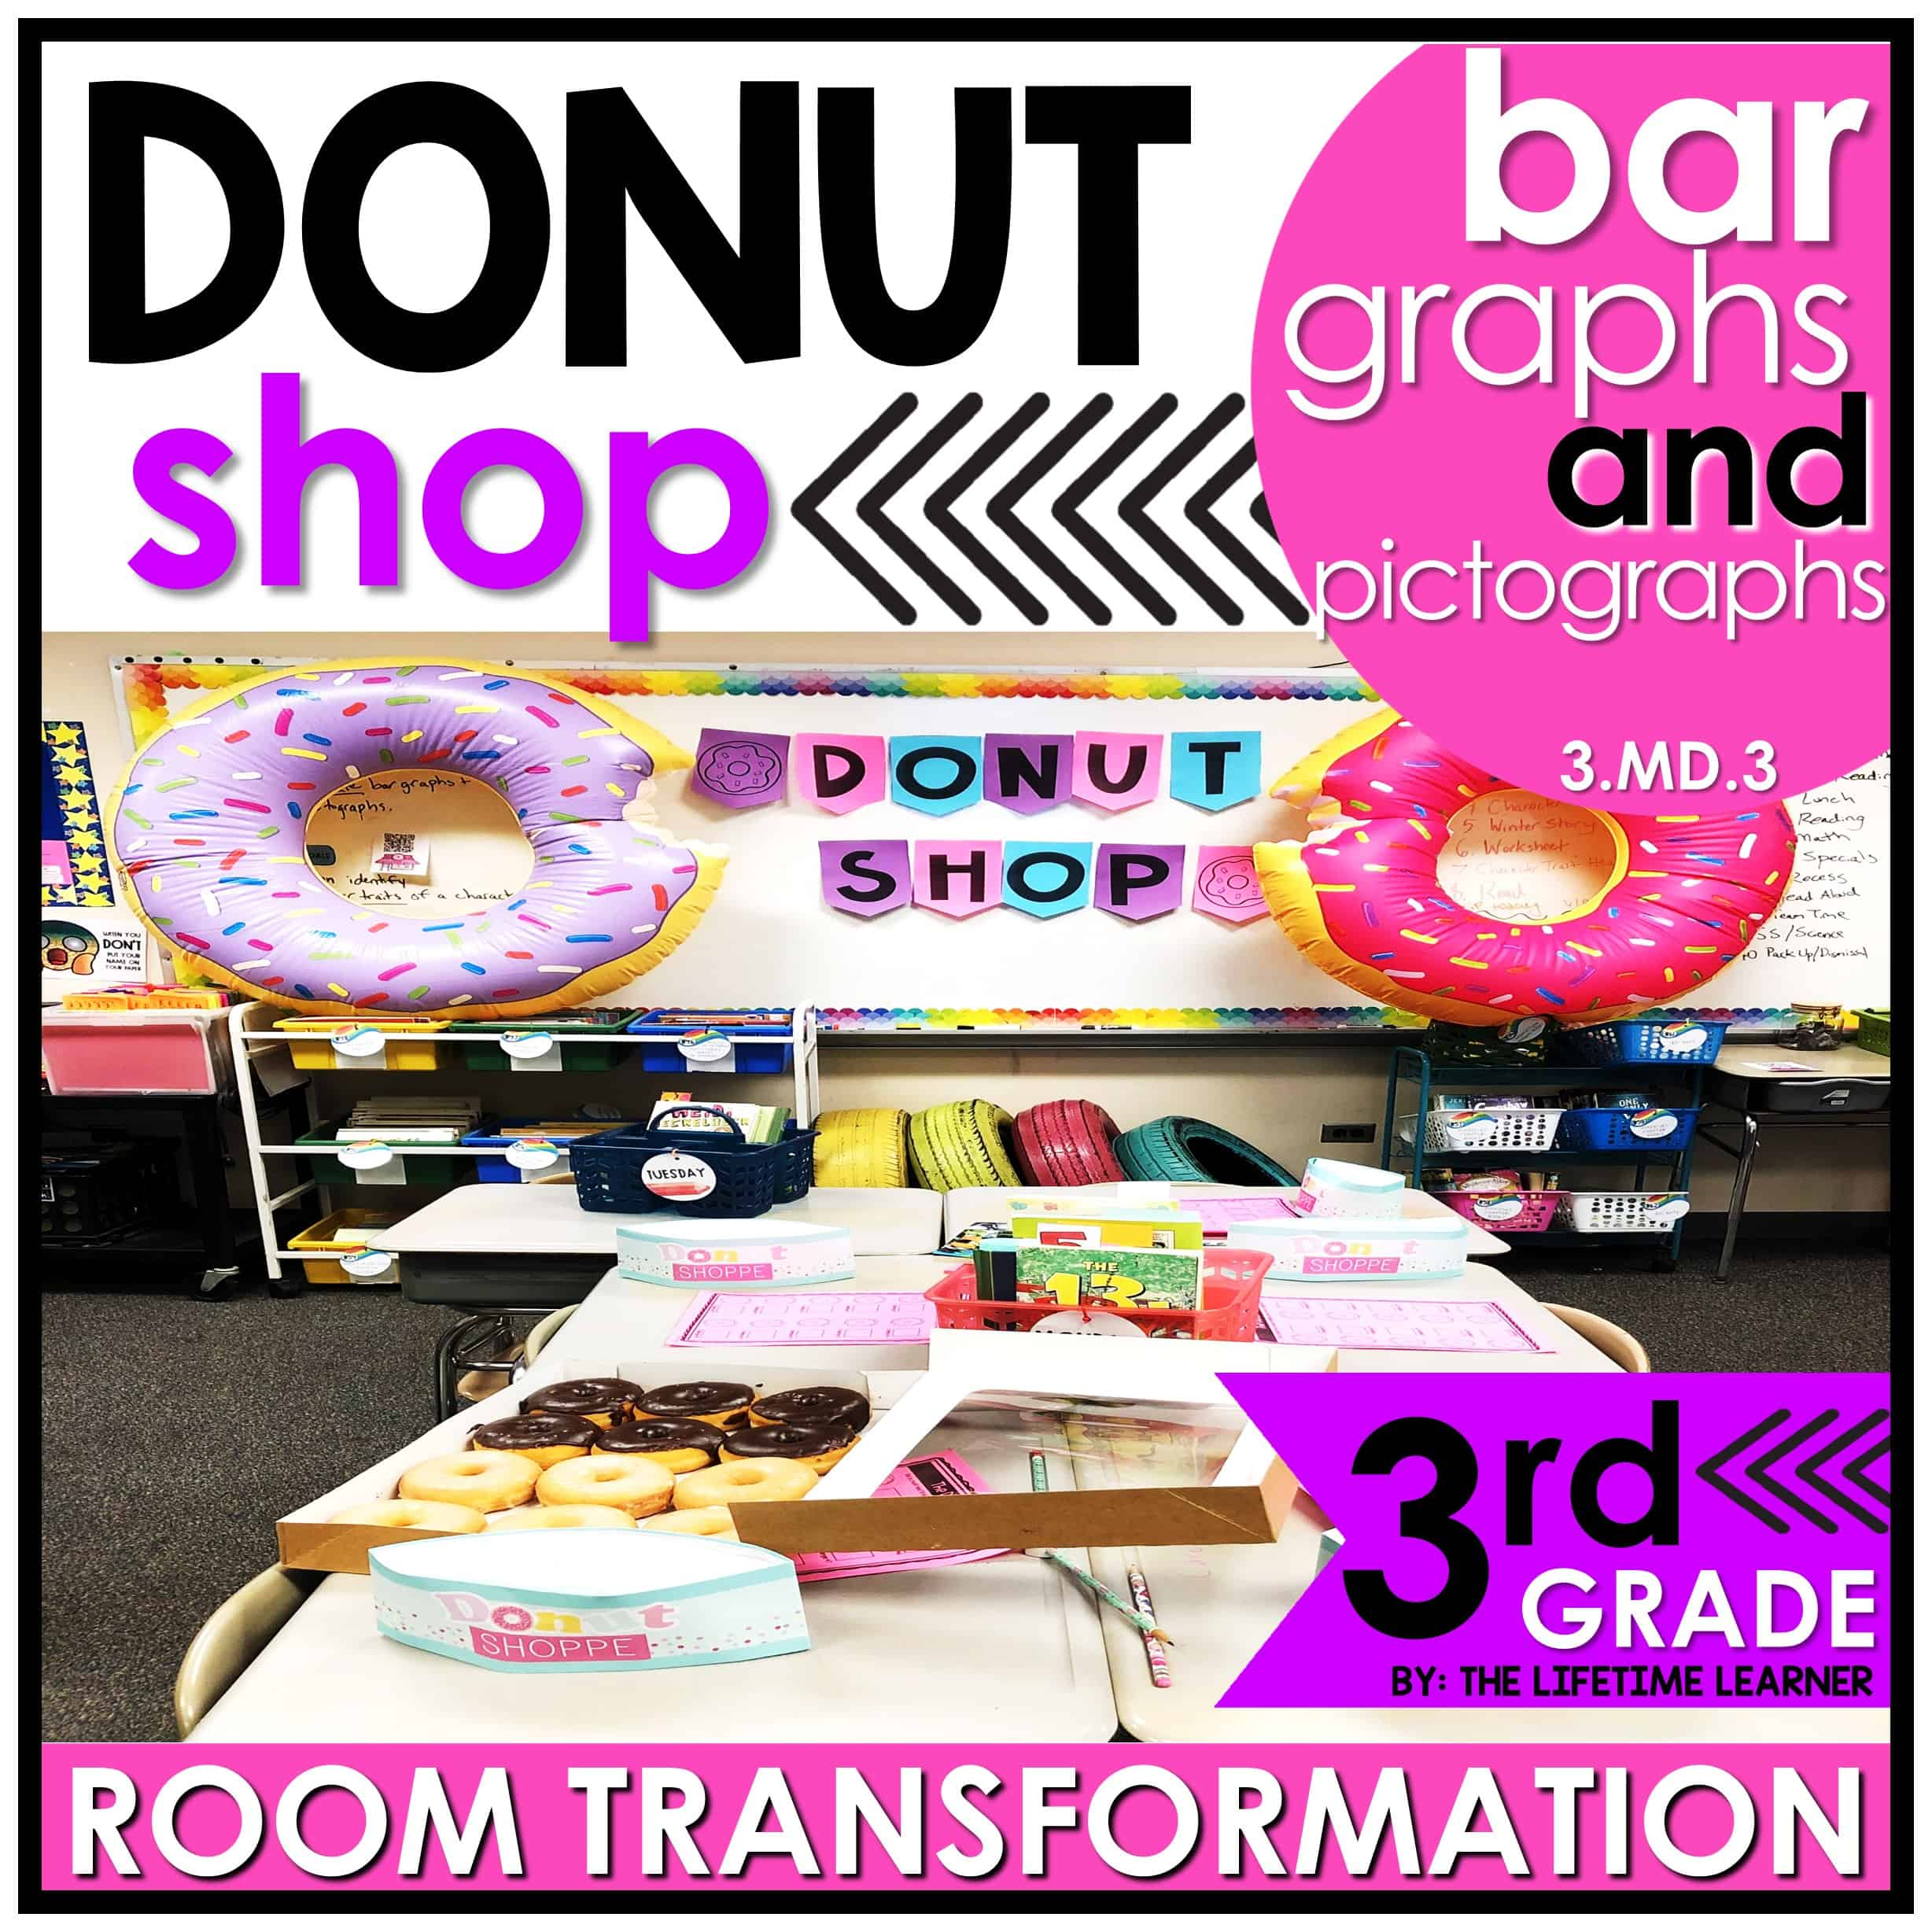 hight resolution of Bar Graphs and Pictographs   3rd Grade Donut Shop Classroom Transformation  - The Lifetime Learner